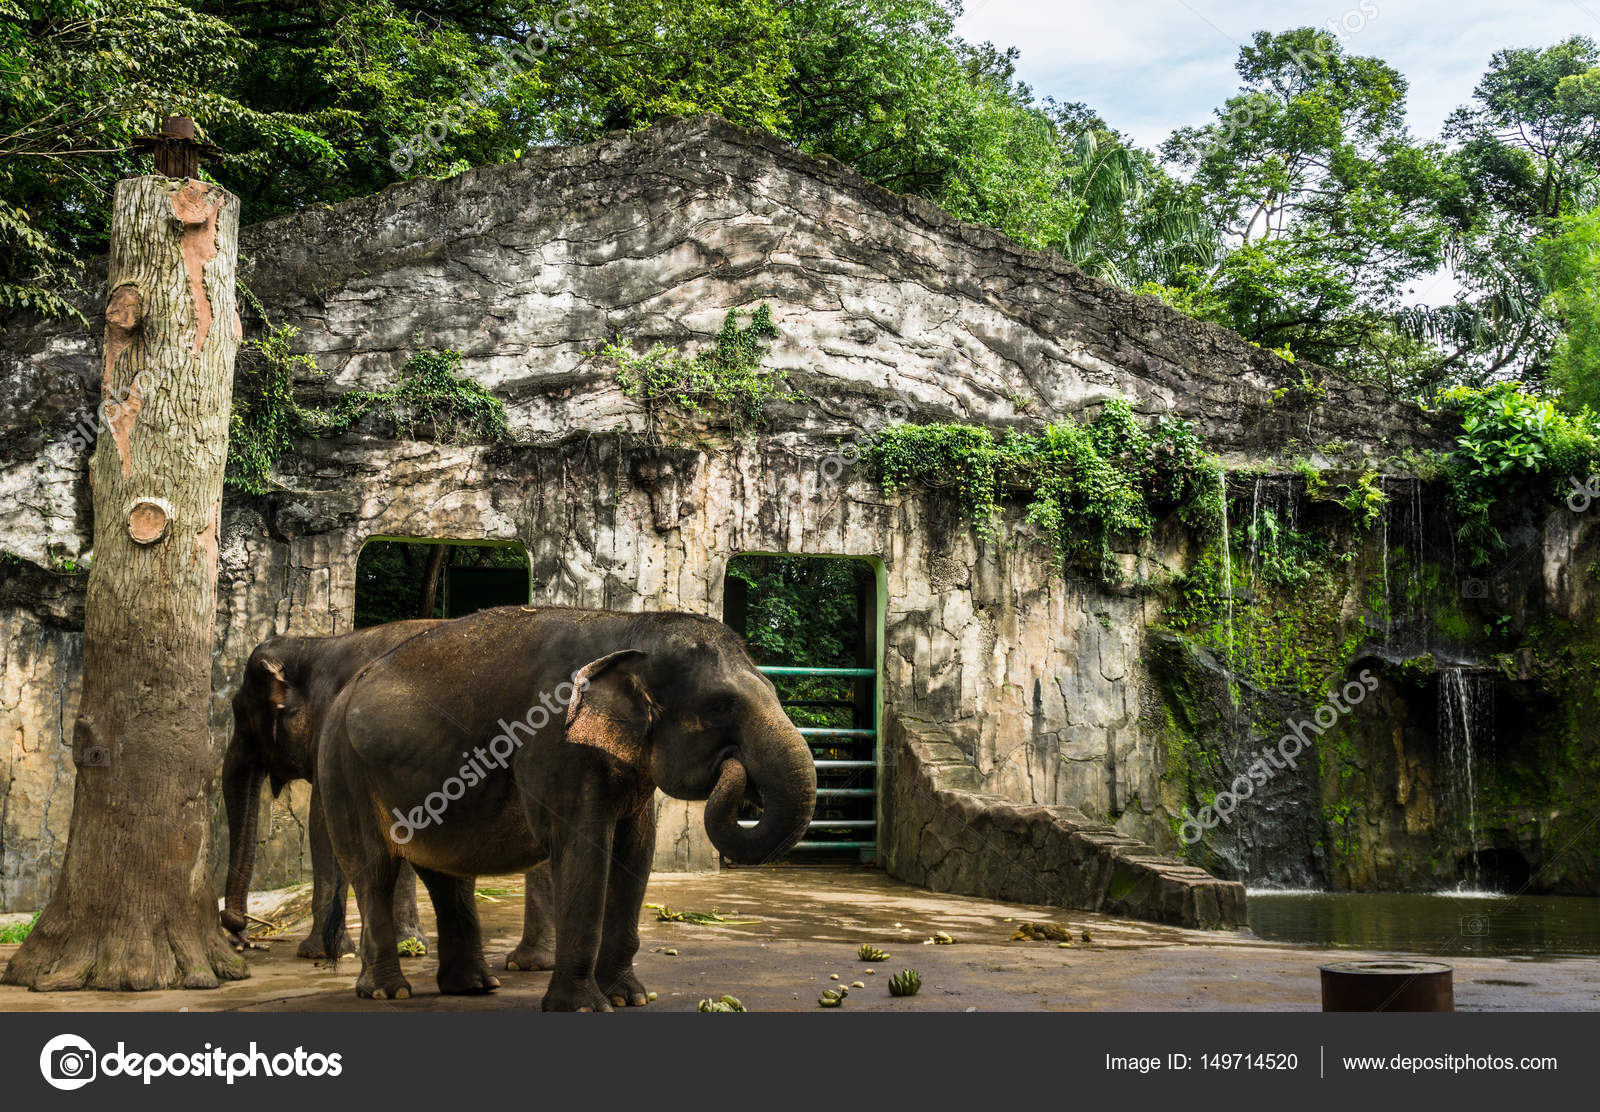 Elephant And Banana On The Floor In The Cage Photo Taken In Ragunan